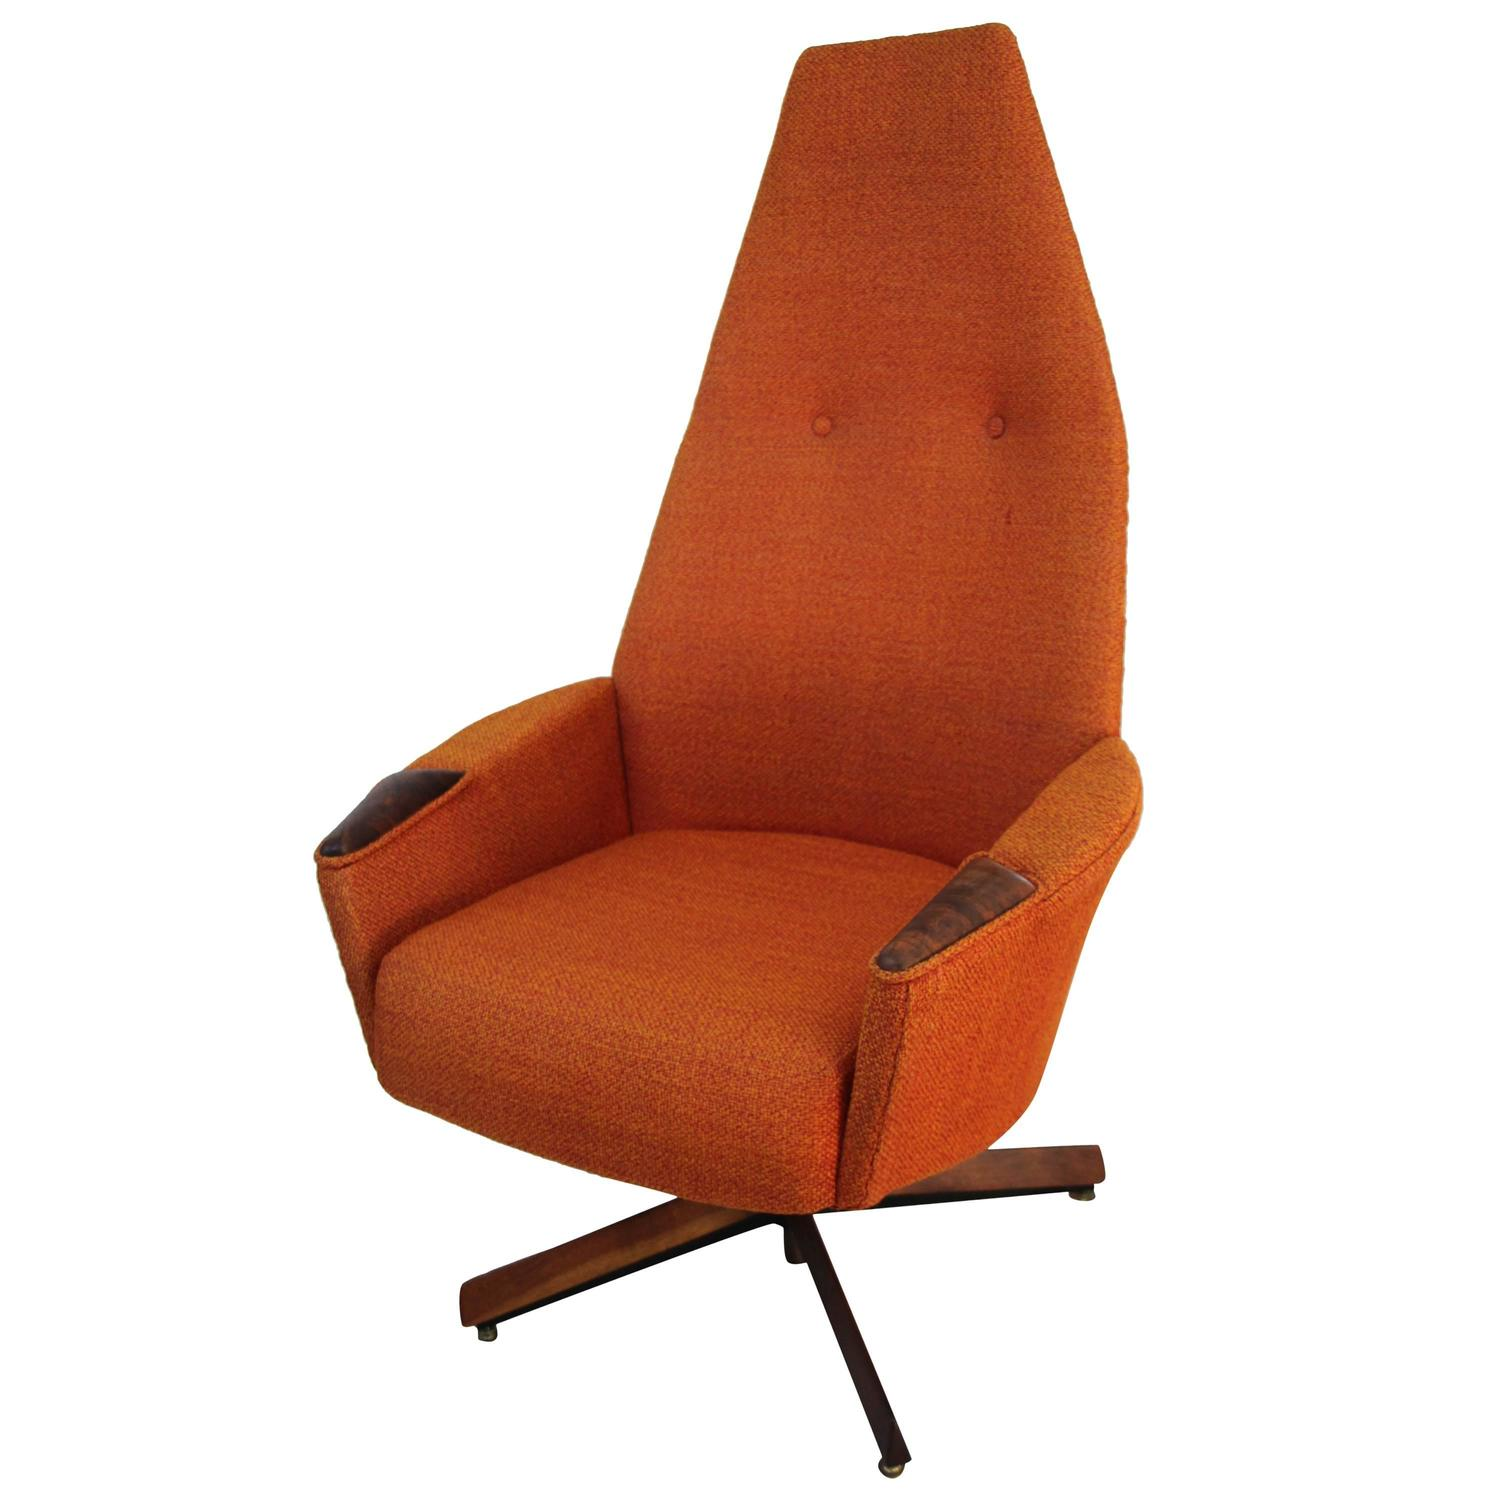 Midcentury High Back Lounge Chair By Adrian Pearsall For Sale At 1stdibs